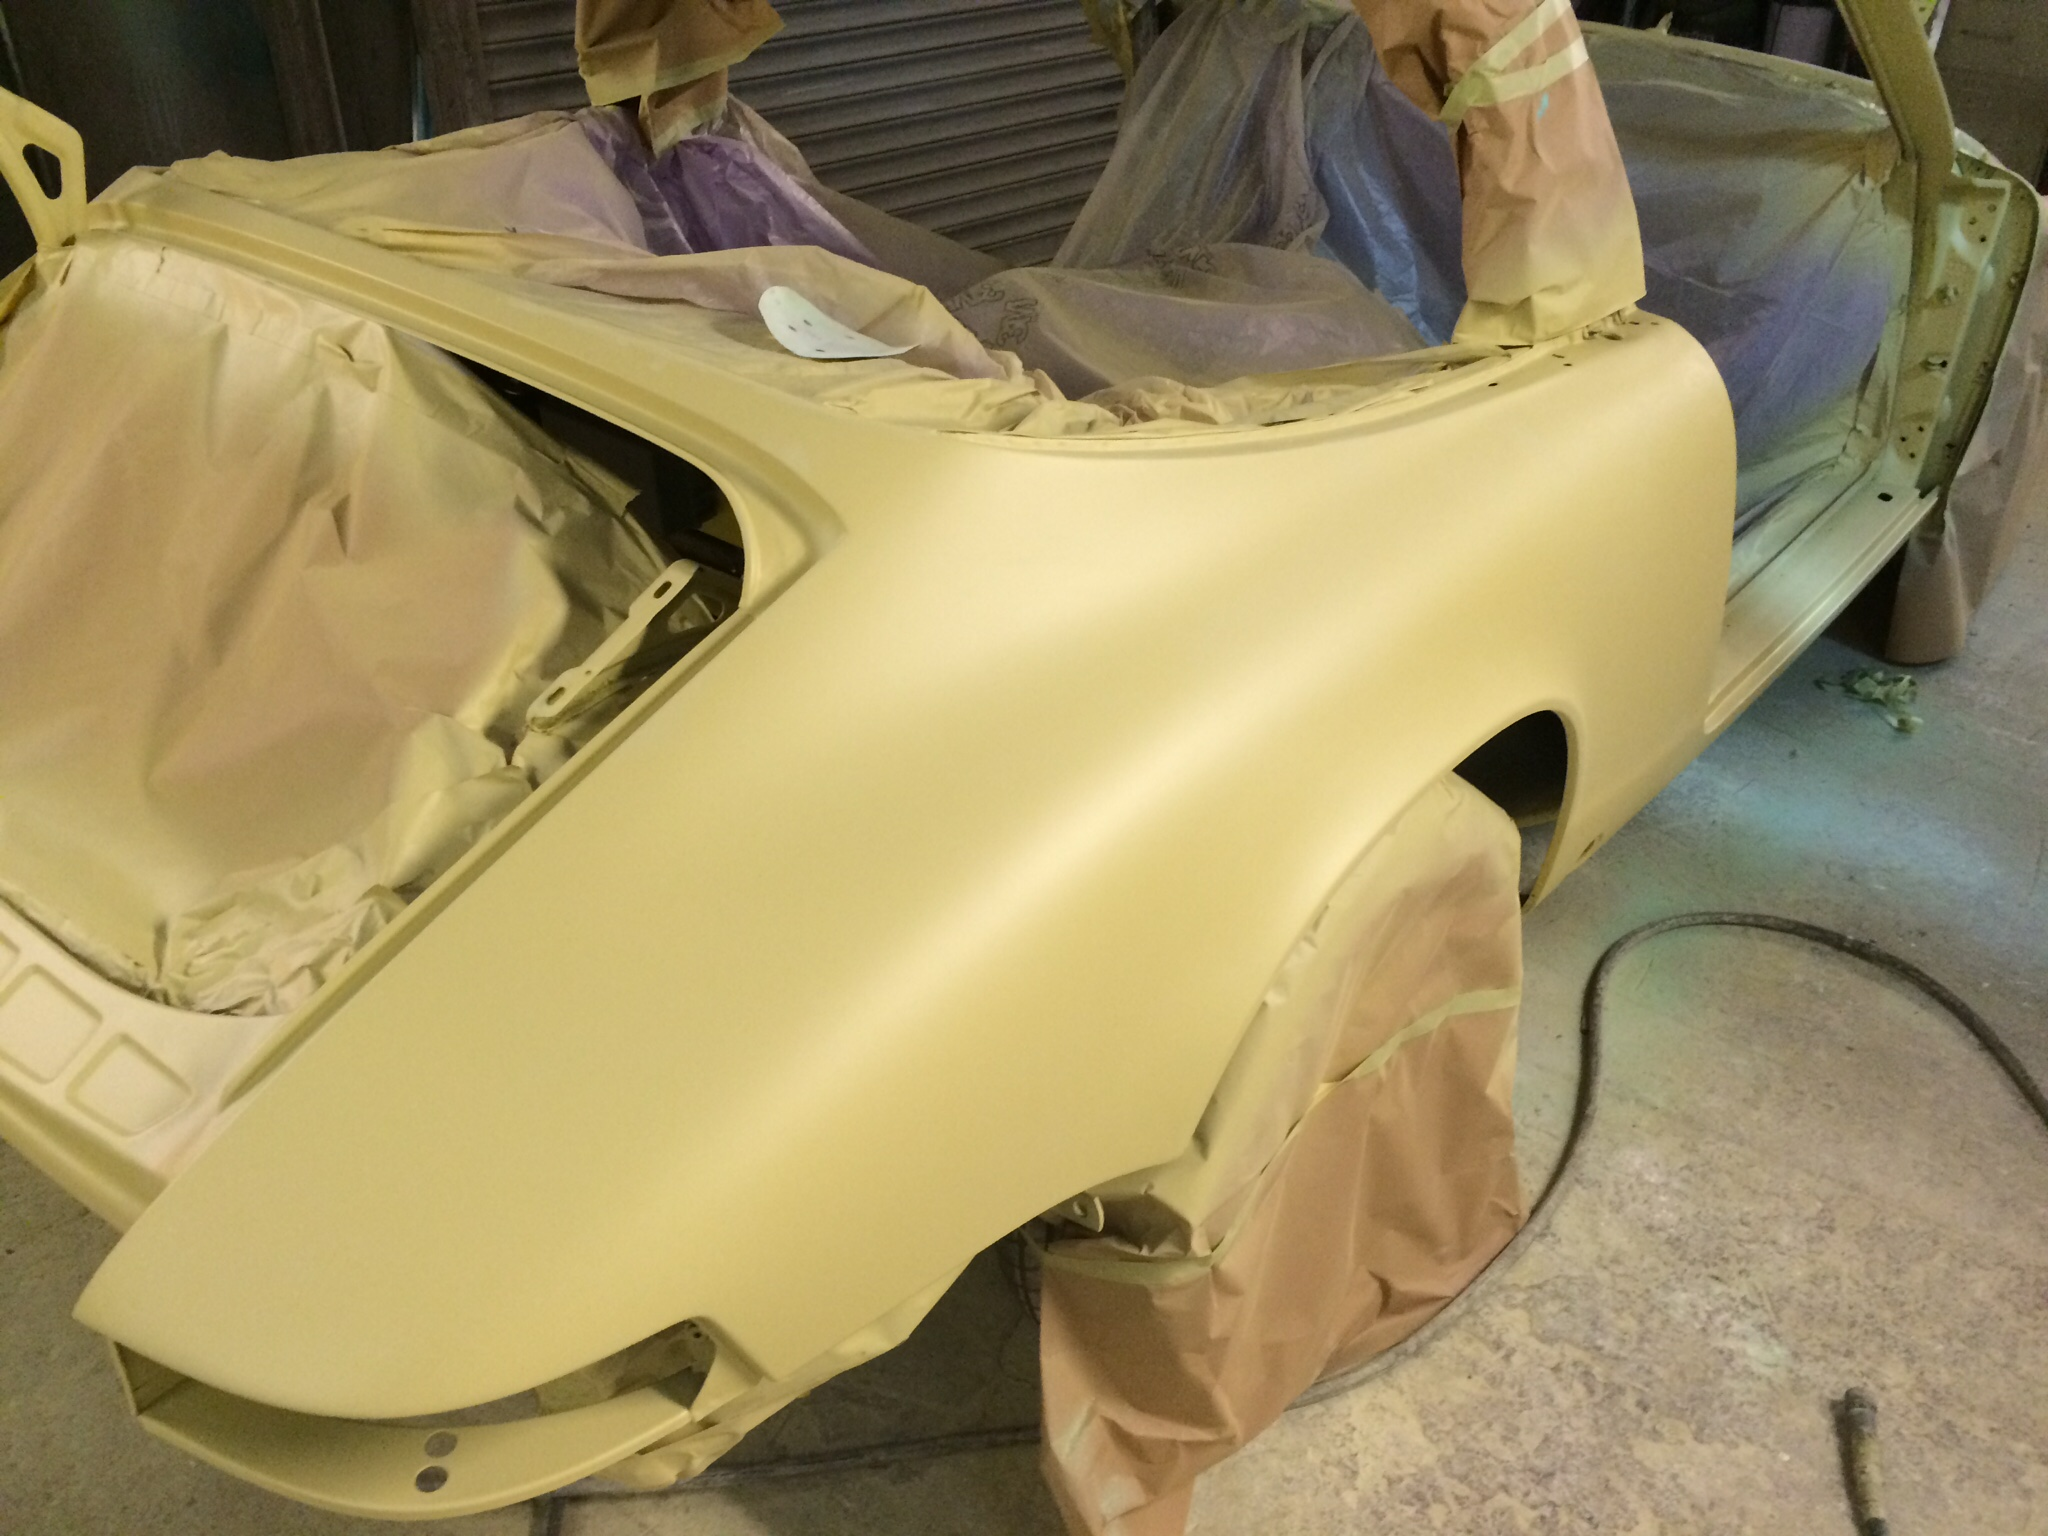 Prosche 911 body in paint primer